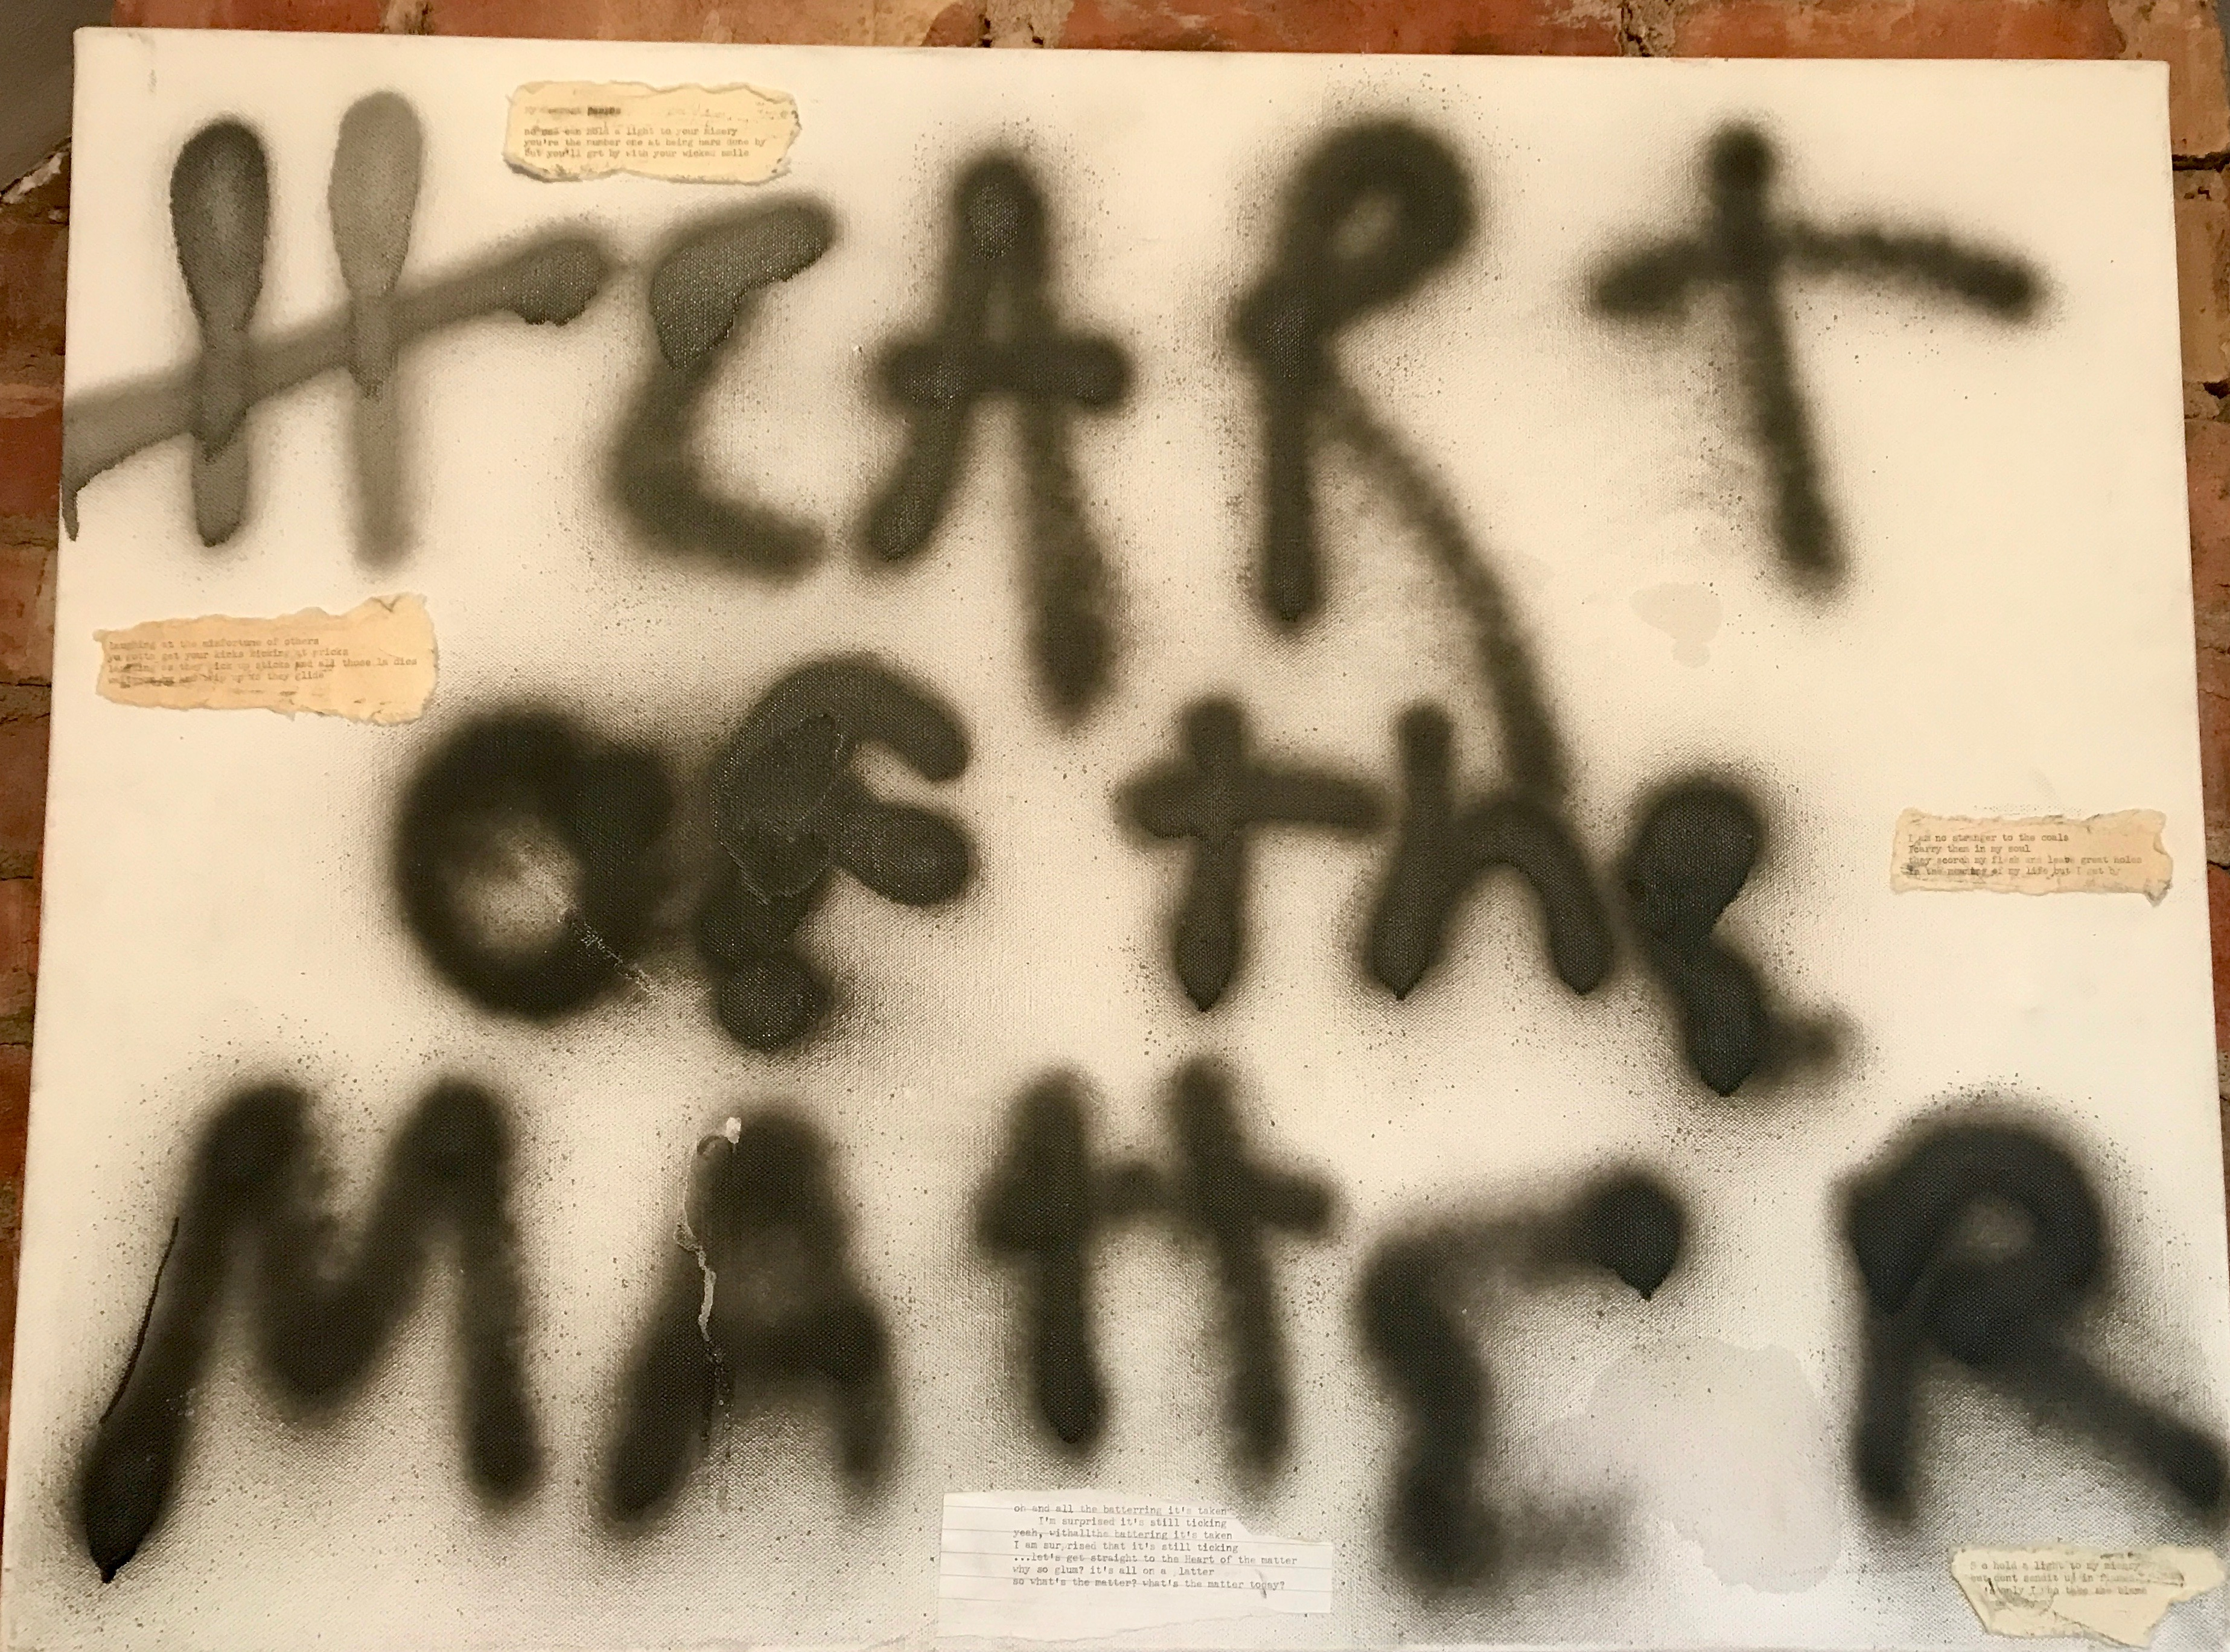 Artwork lottery - Heart Of The Matter - Albion Rooms Margate